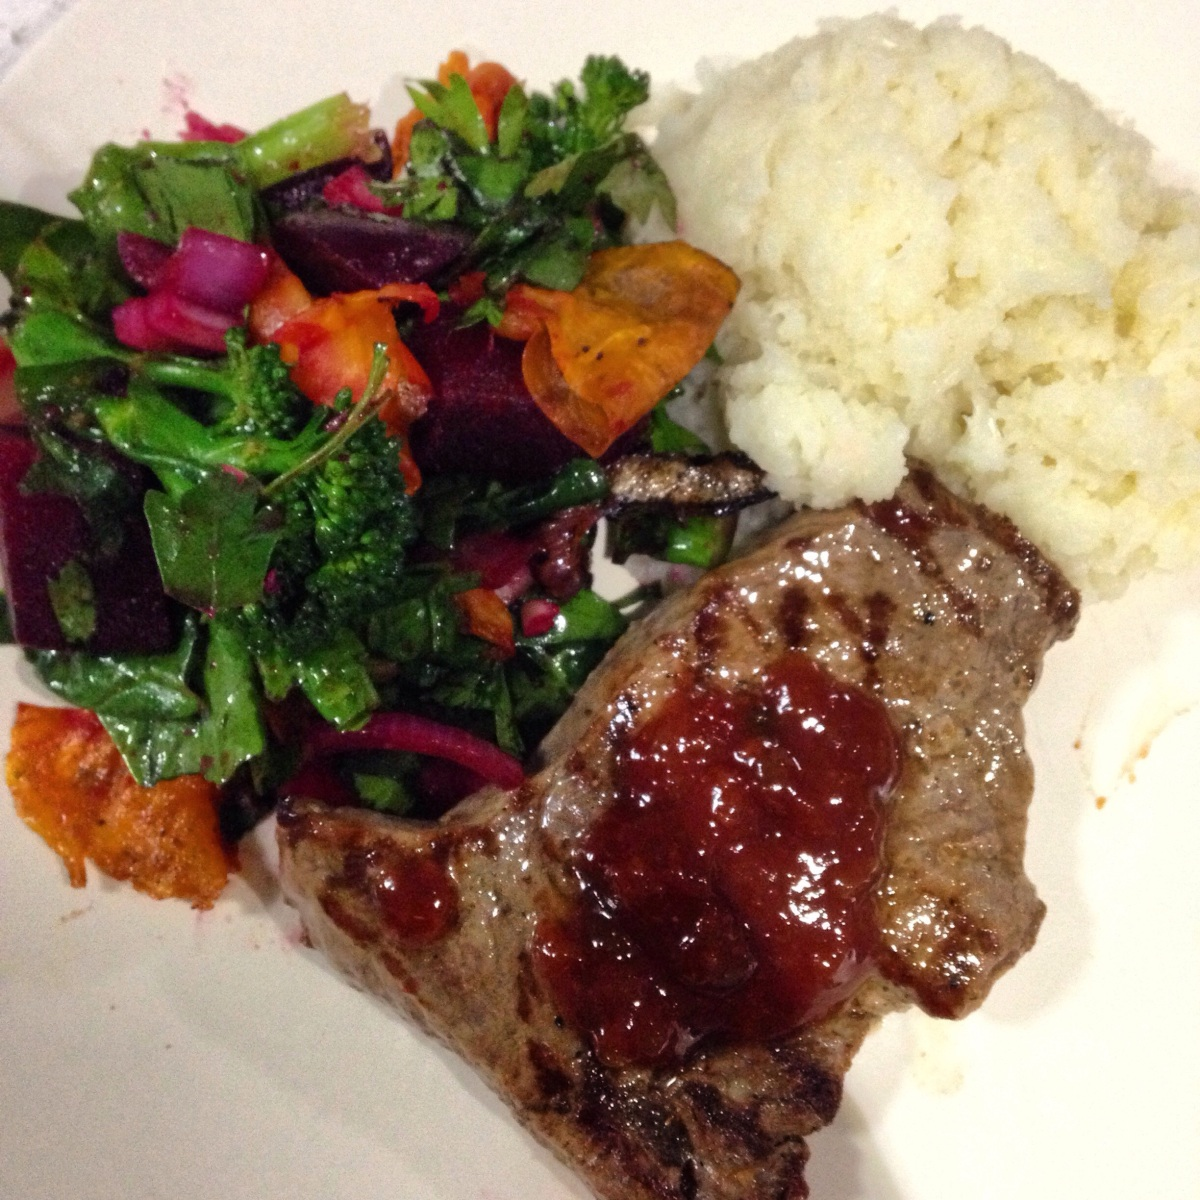 High Protein dinner: Organic Grass fed Beef and Spinach Beetroot Salad with Cauliflower Mash